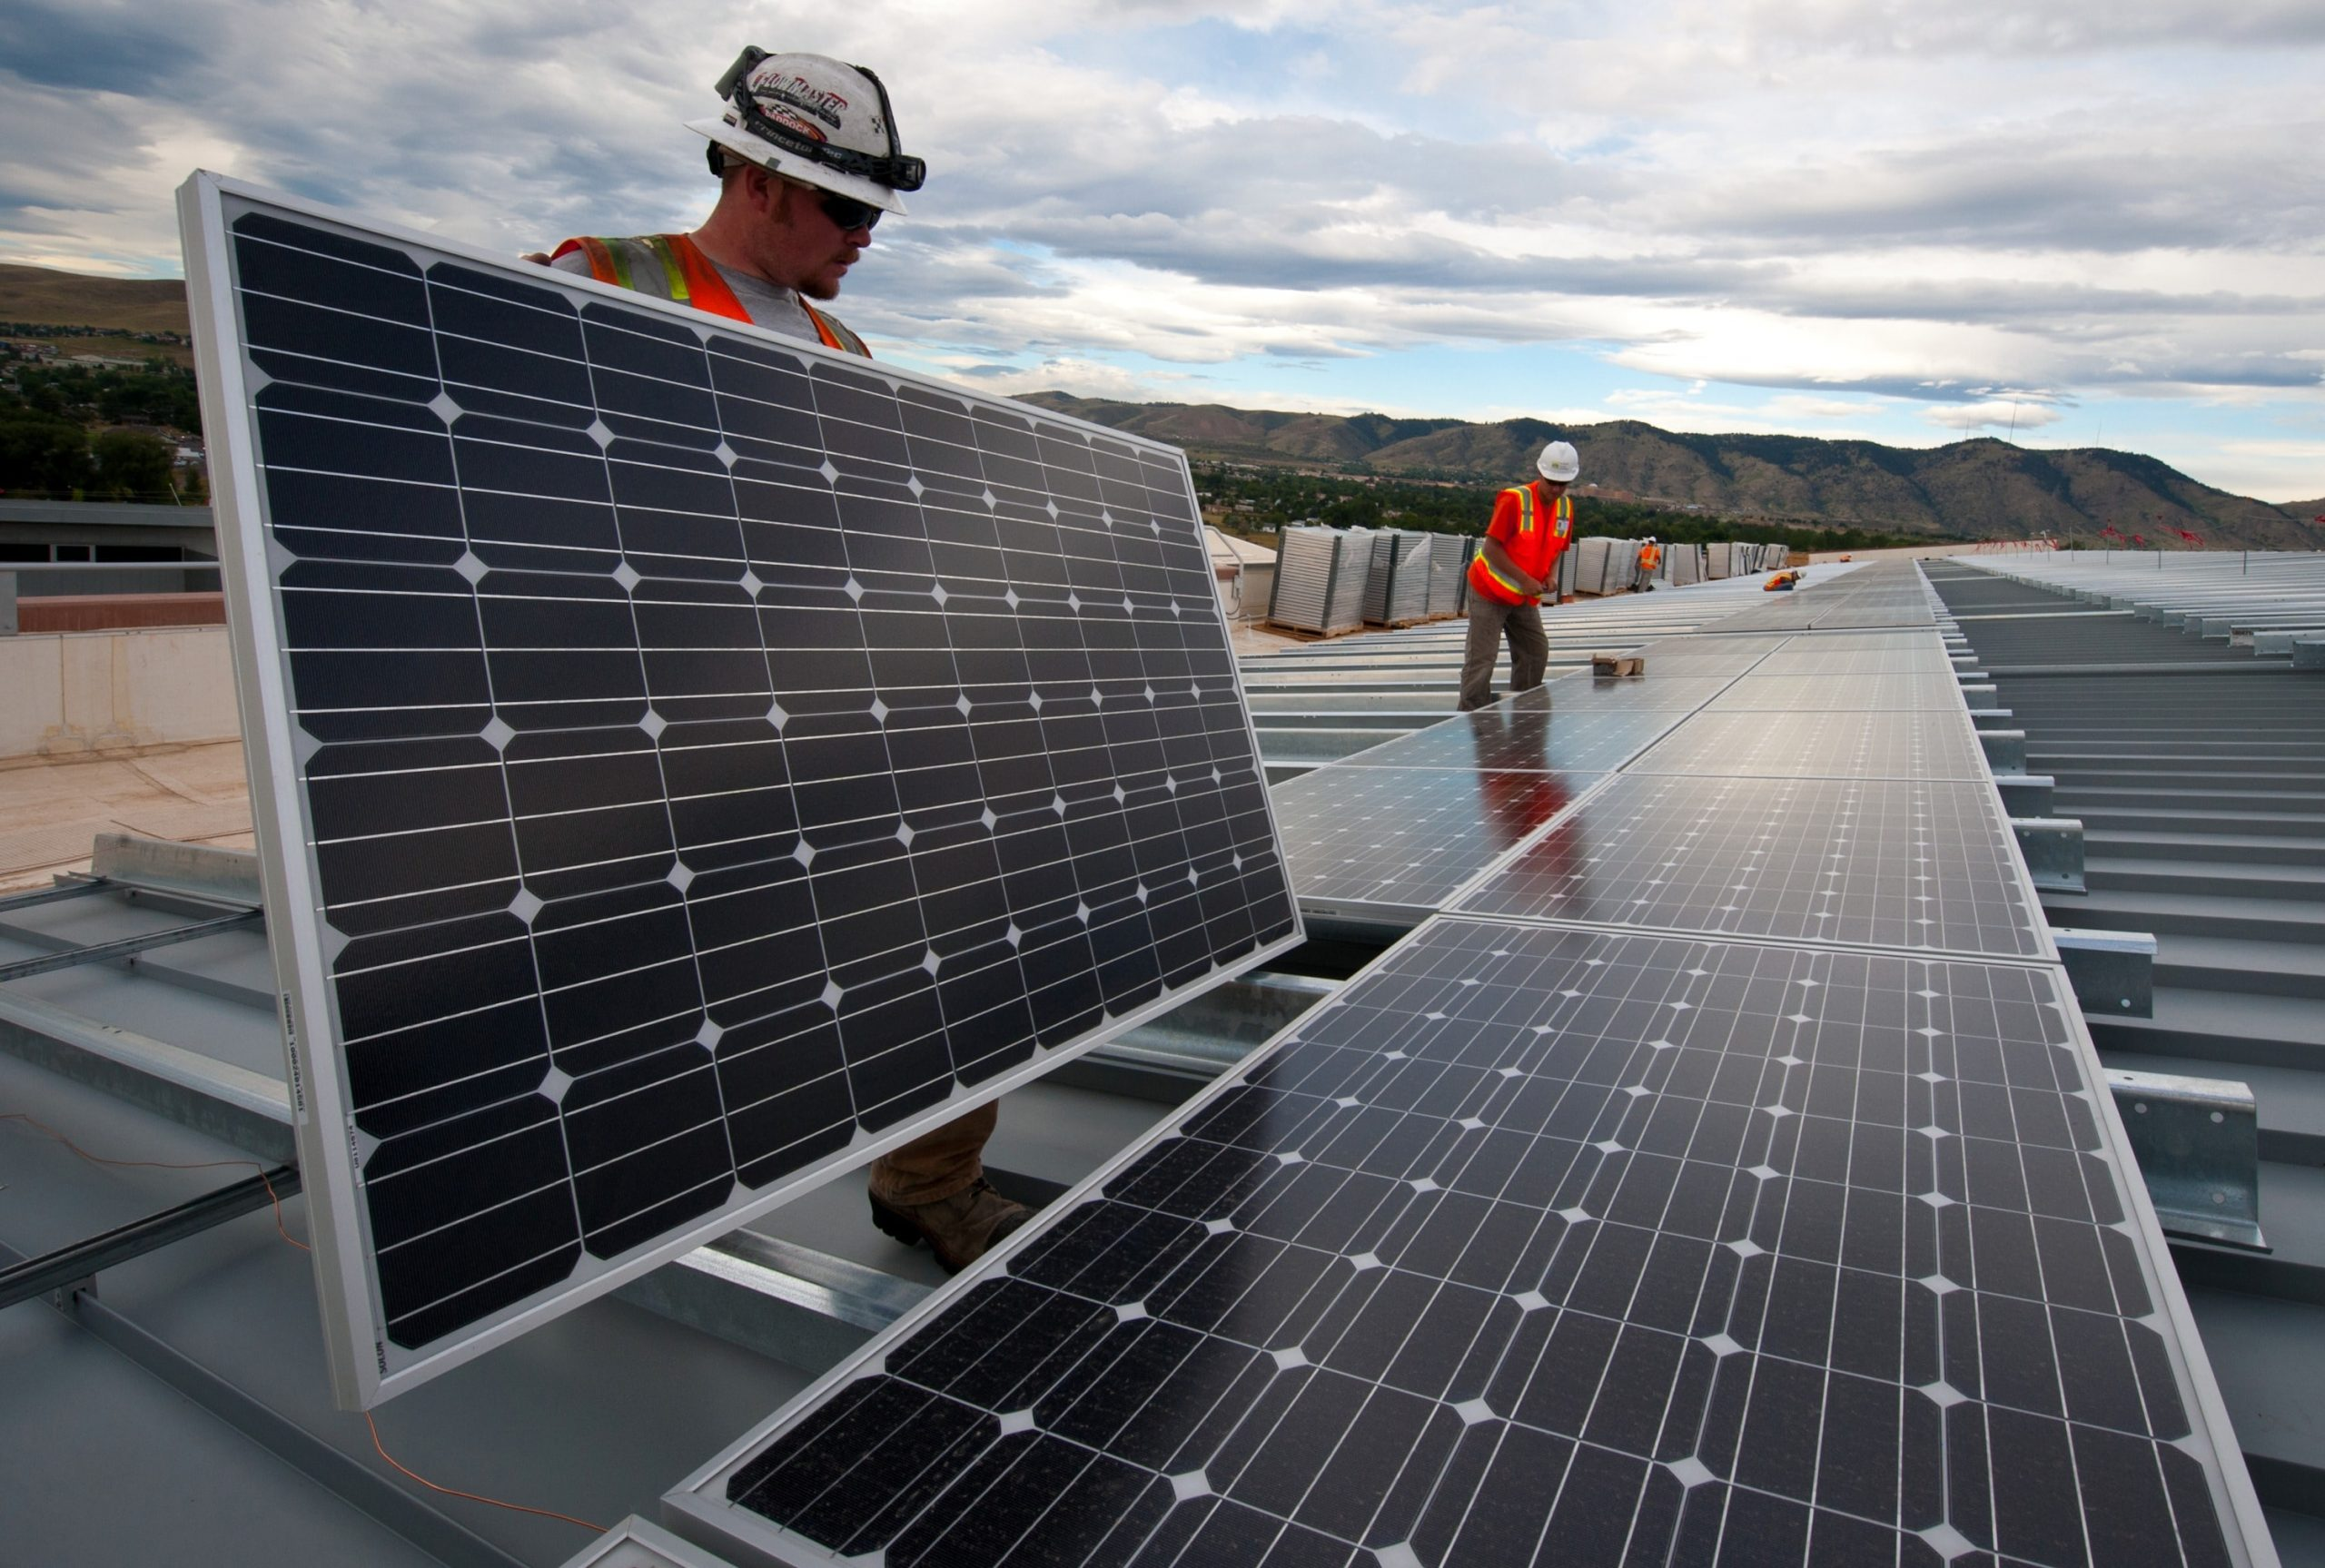 The key to a 100% renewable energy future